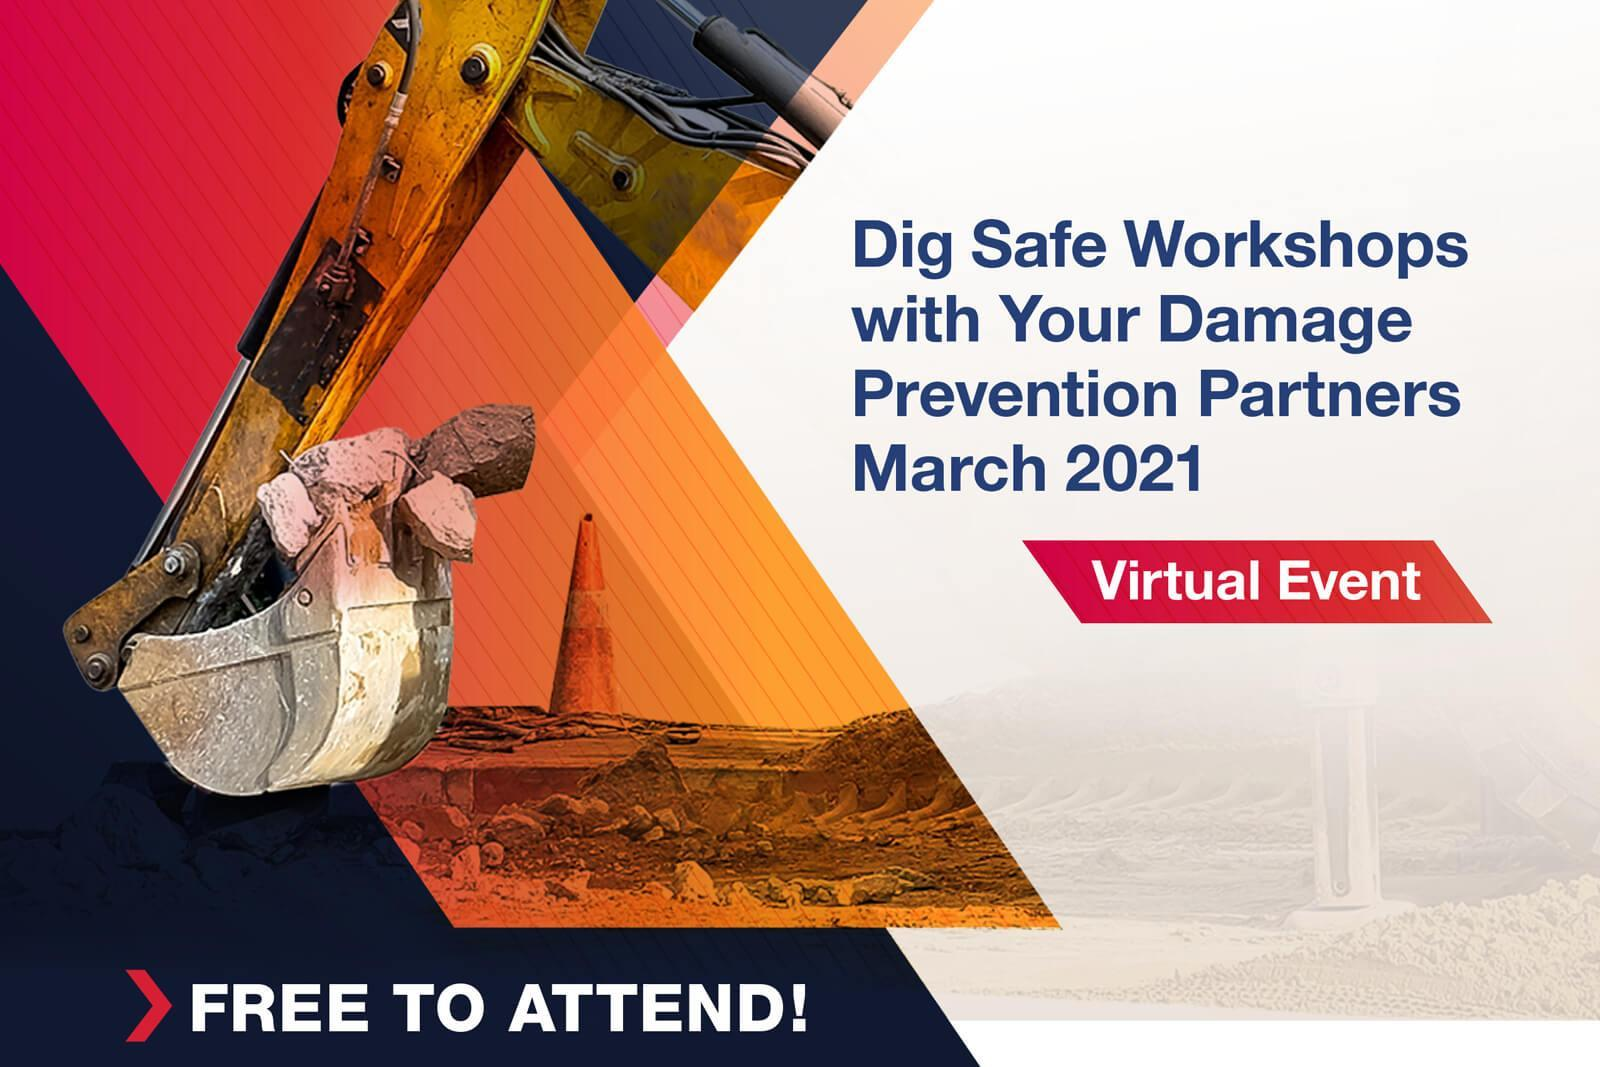 Dig Safe Workshops — March 2021